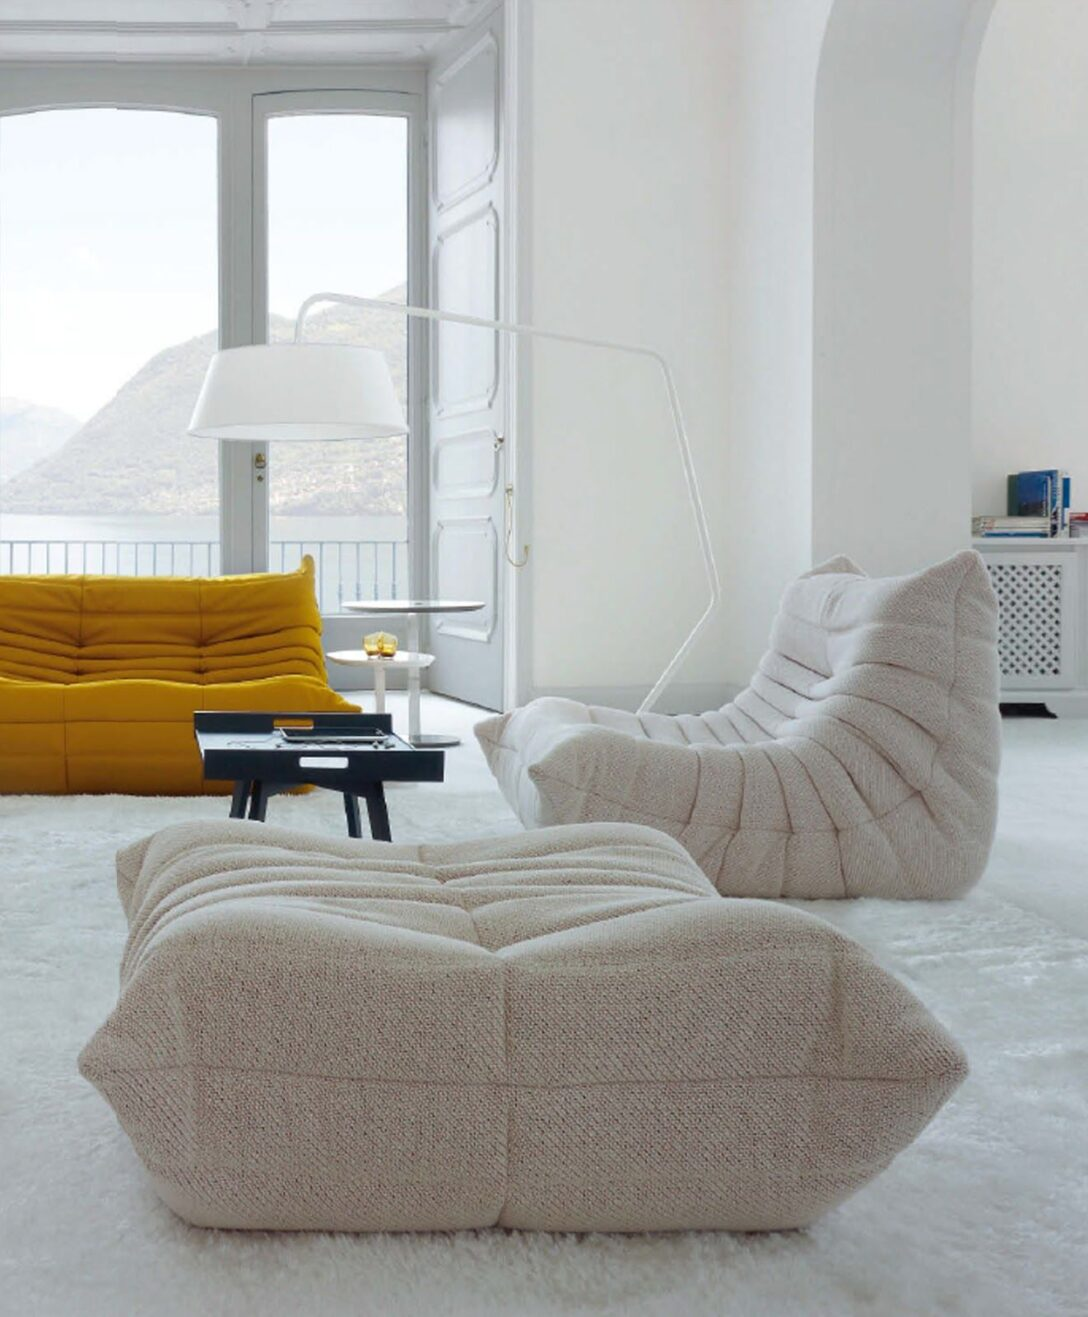 Large Size of Ligne Roset Togo Fake Chair For Sale Fireside Canada Occasion Lignet Gebraucht Sofa Uk Knockoff Reproduction Mini Sessel Farben Armchair In Dios Ecru Preis Wohnzimmer Ligne Roset Togo